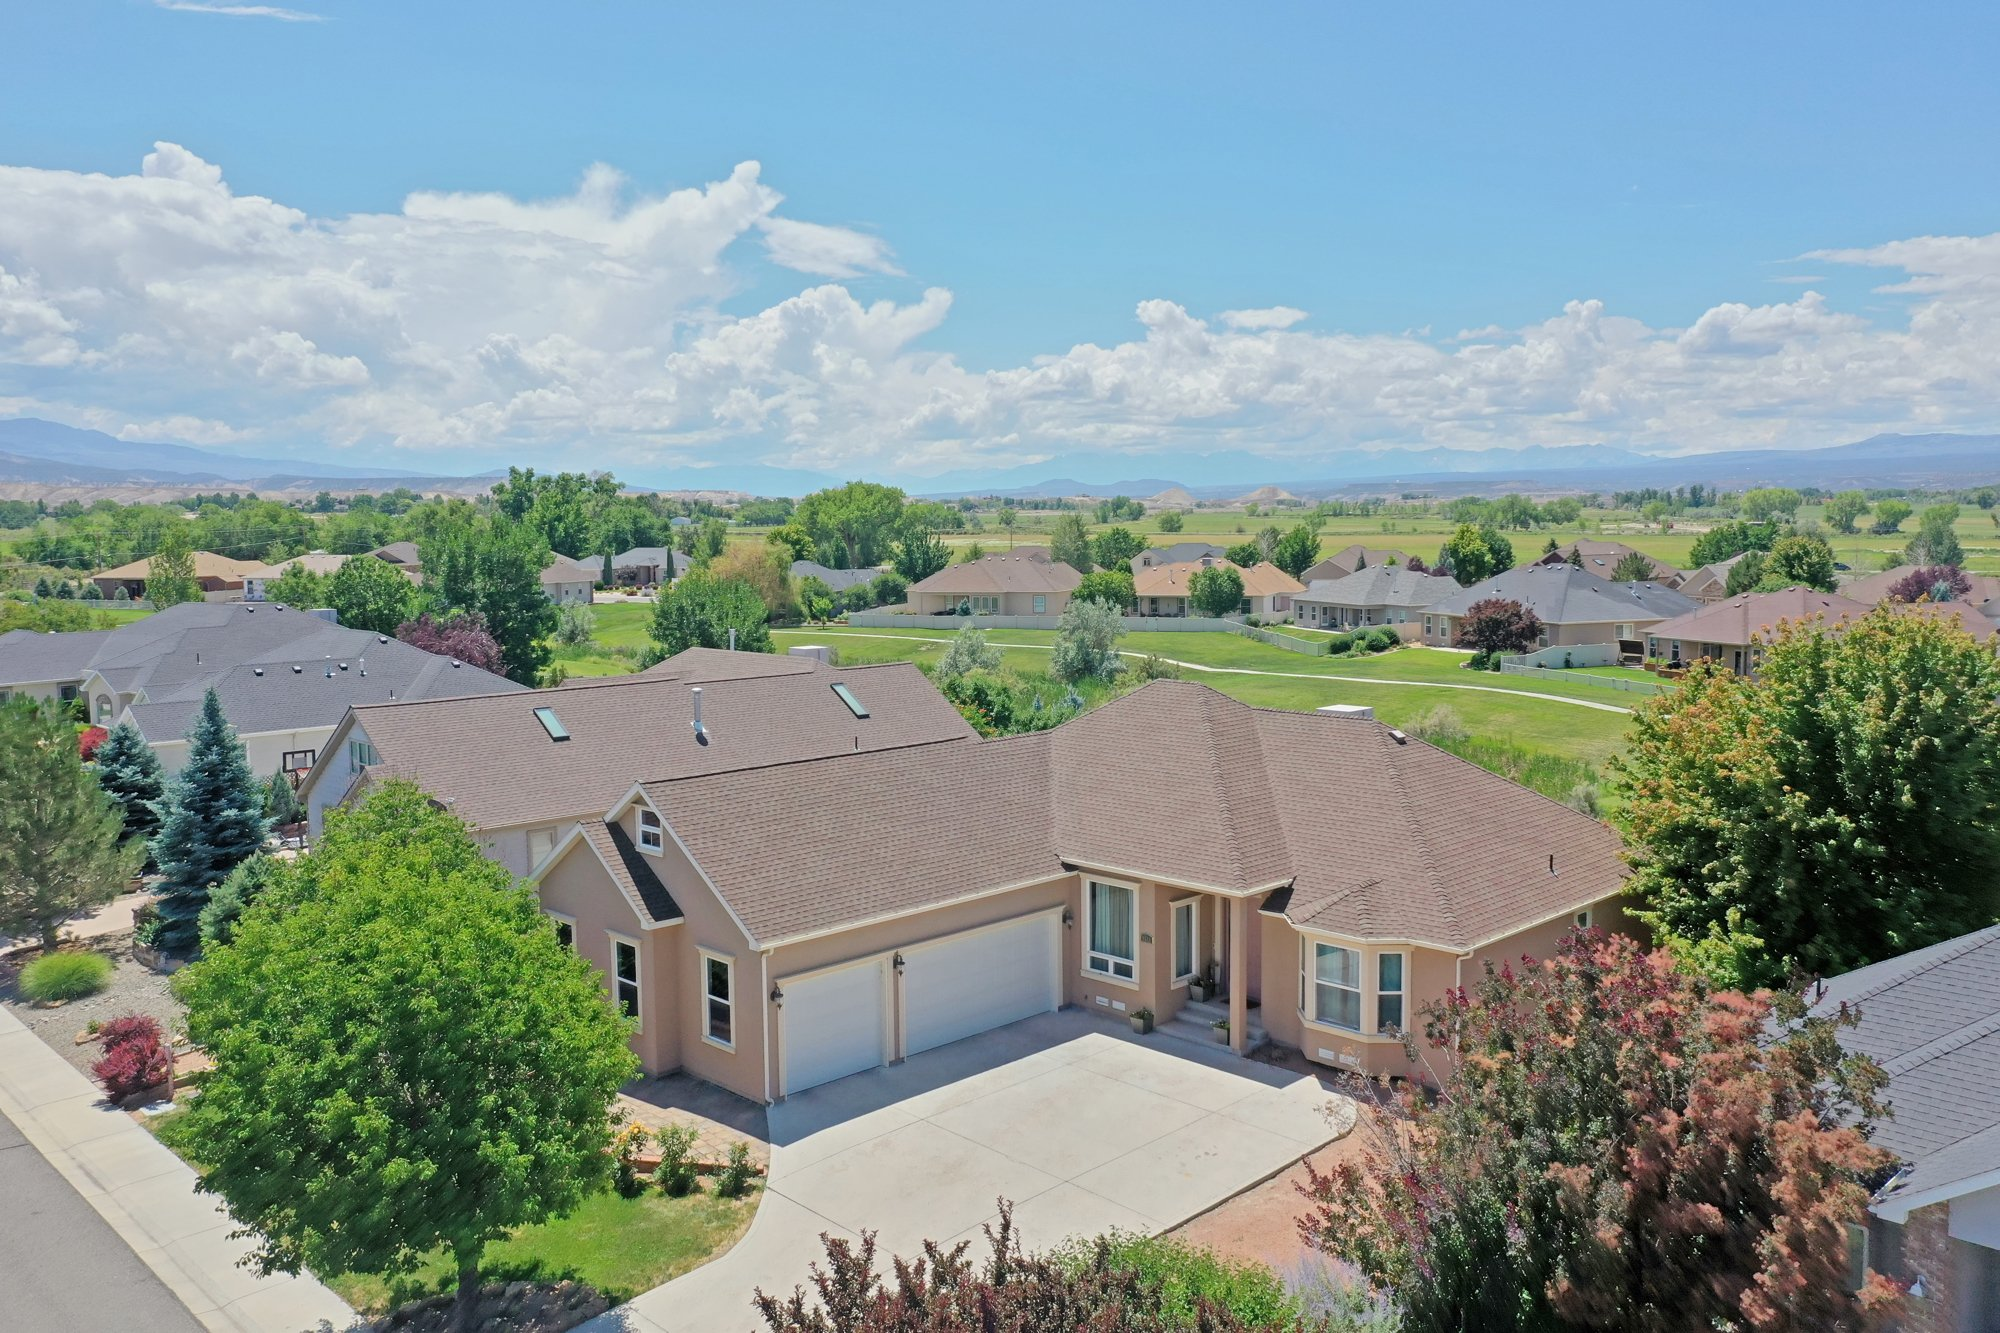 Front Aerial View - 2924 Lost Creek Rd S. Montrose, CO 81401 - Atha Team Real Estate Agents